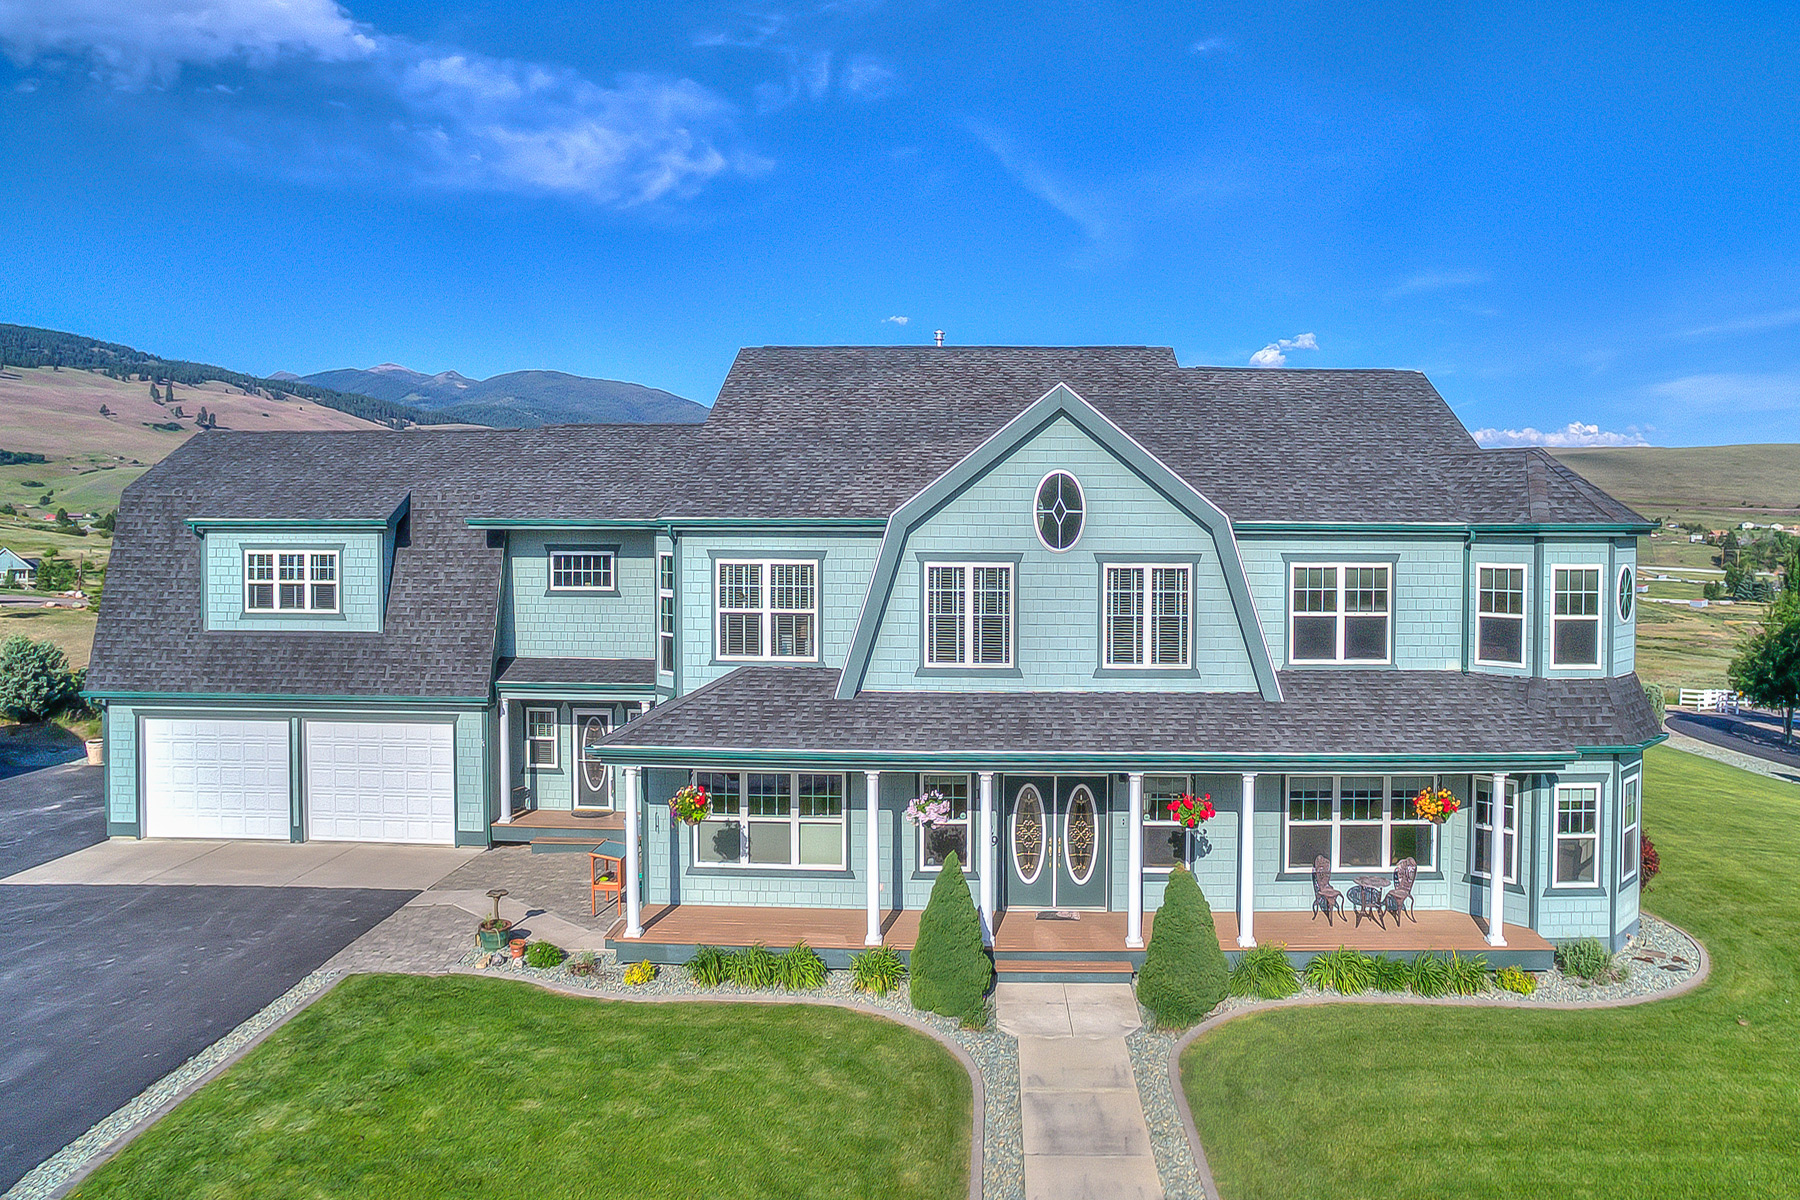 Single Family Home for Sale at 11329 Tookie Trek Missoula, Montana, 59808 United States